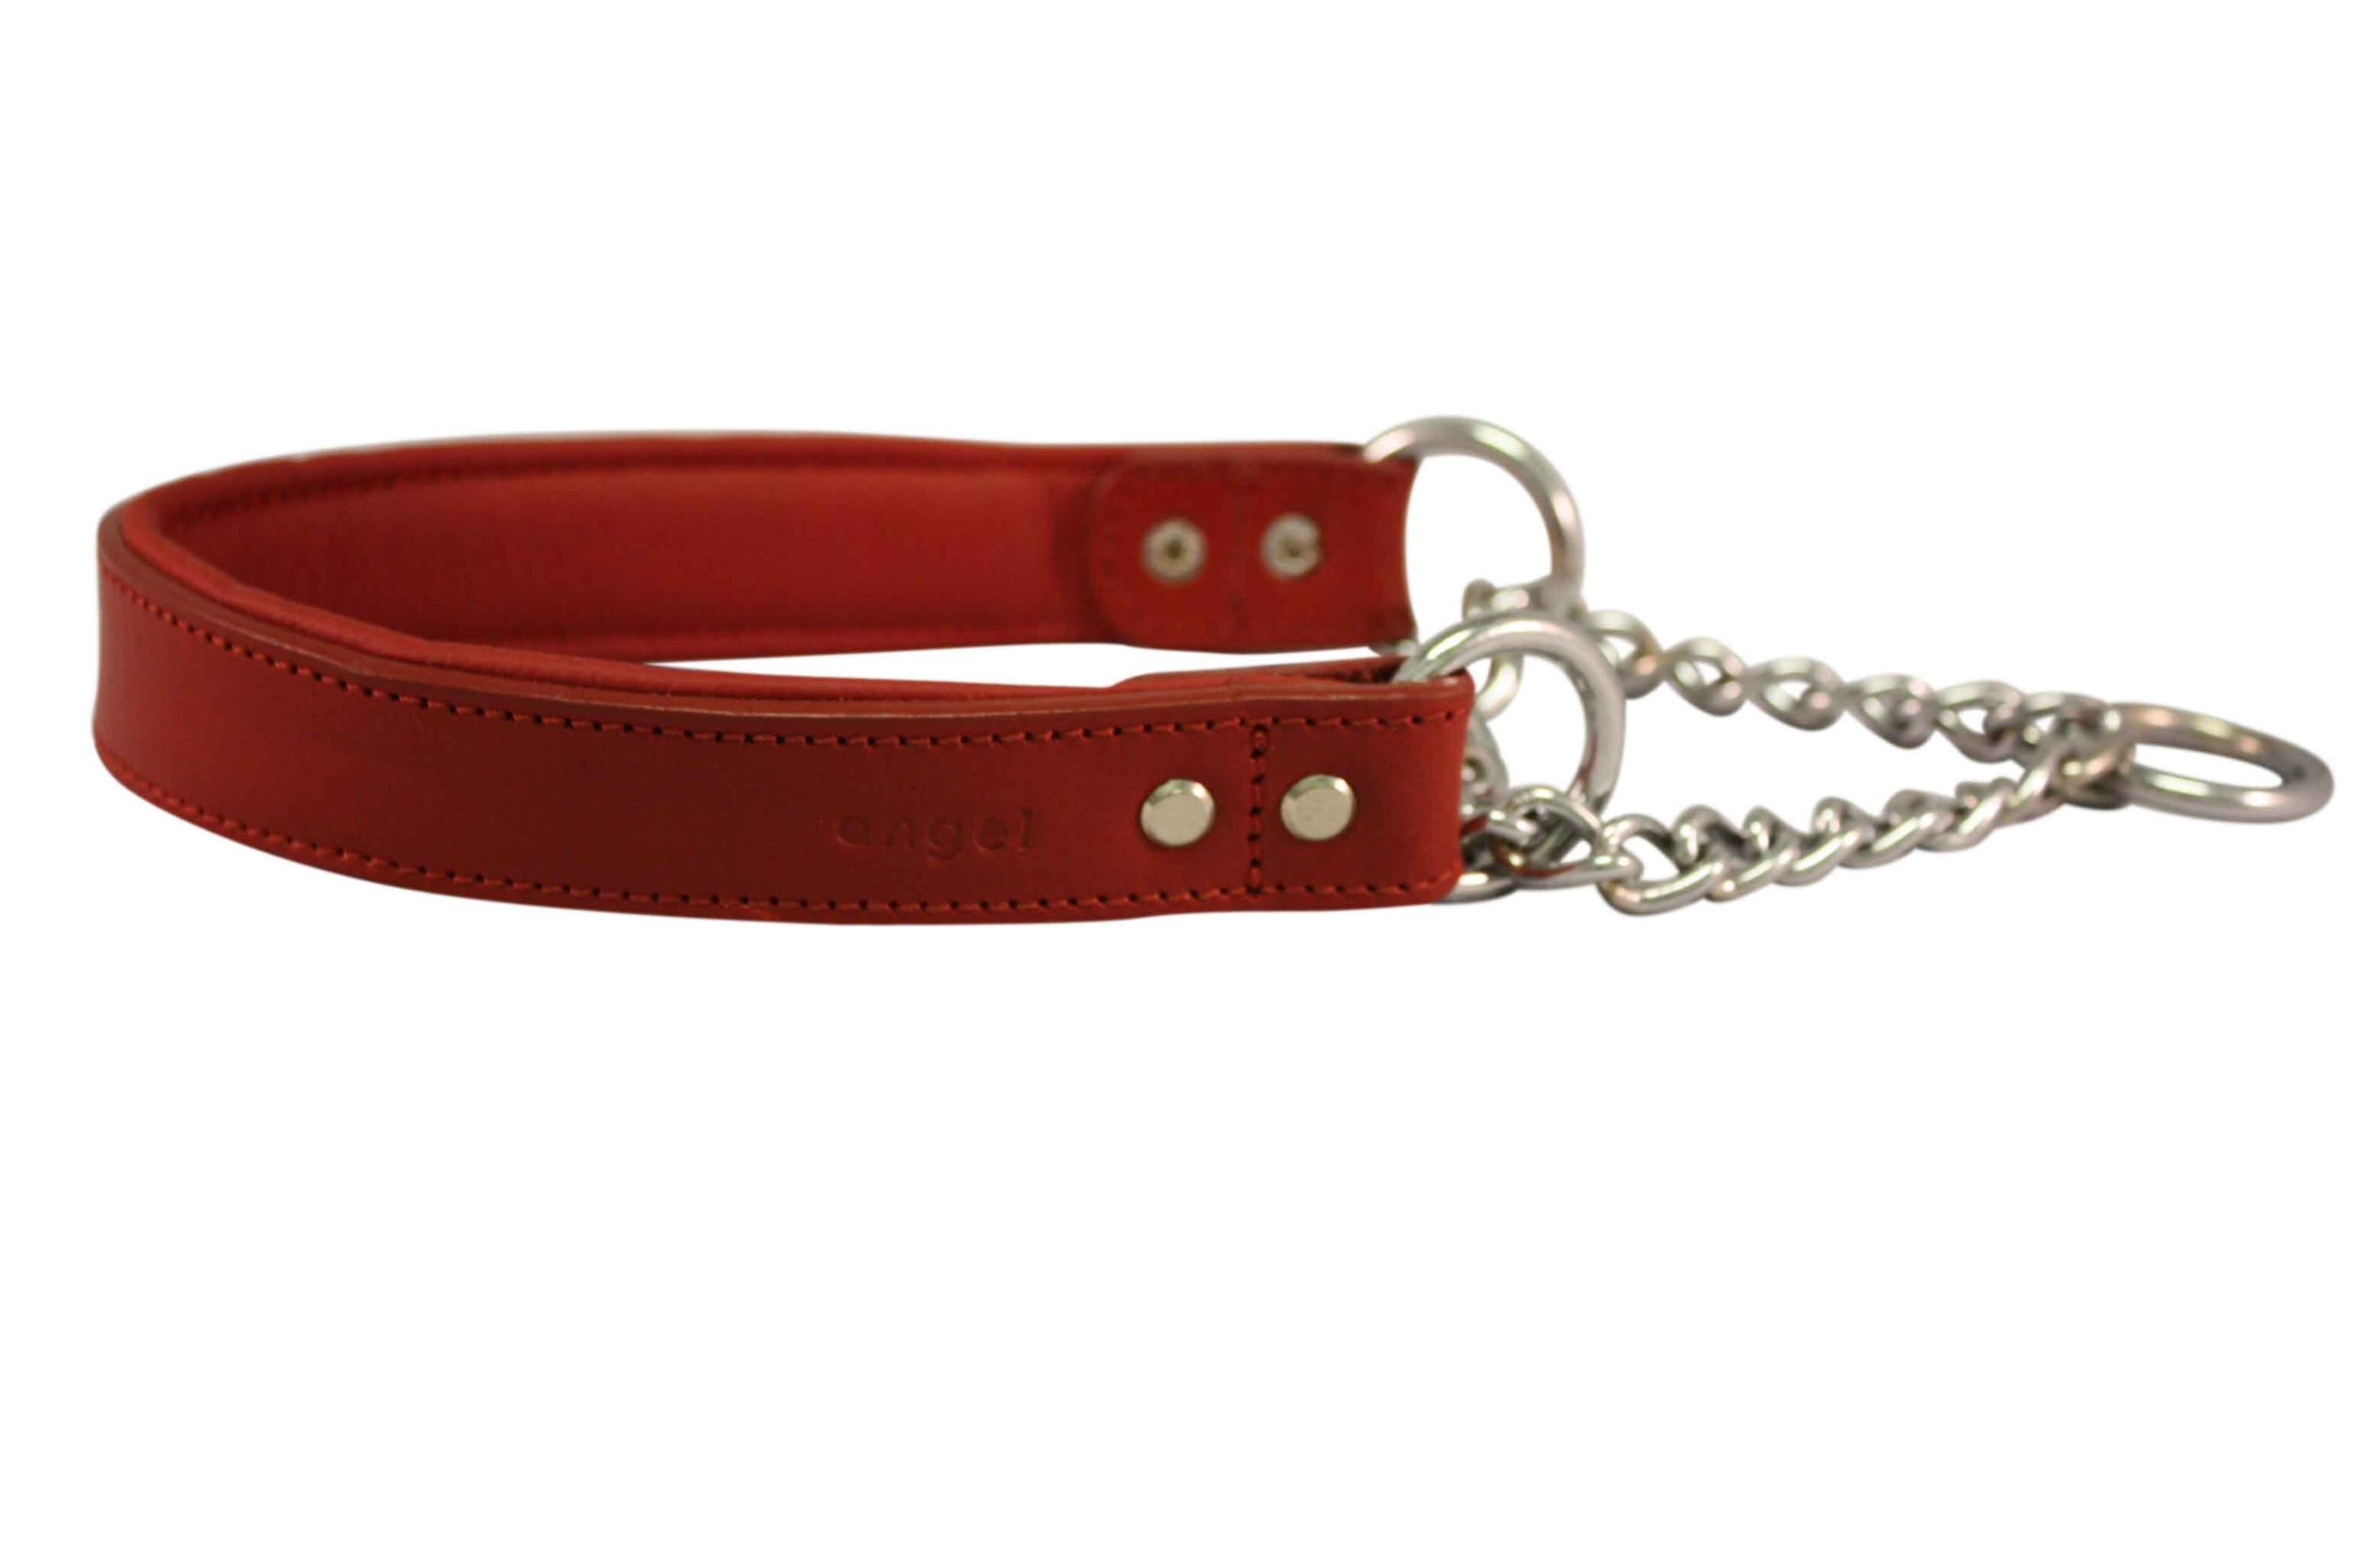 Leather Martingale Dog Collar, Choker, 16''x1'' (20.5'' fully extended), Red, Leather (Rio) with Stainless Steel. Read Description for correct sizing